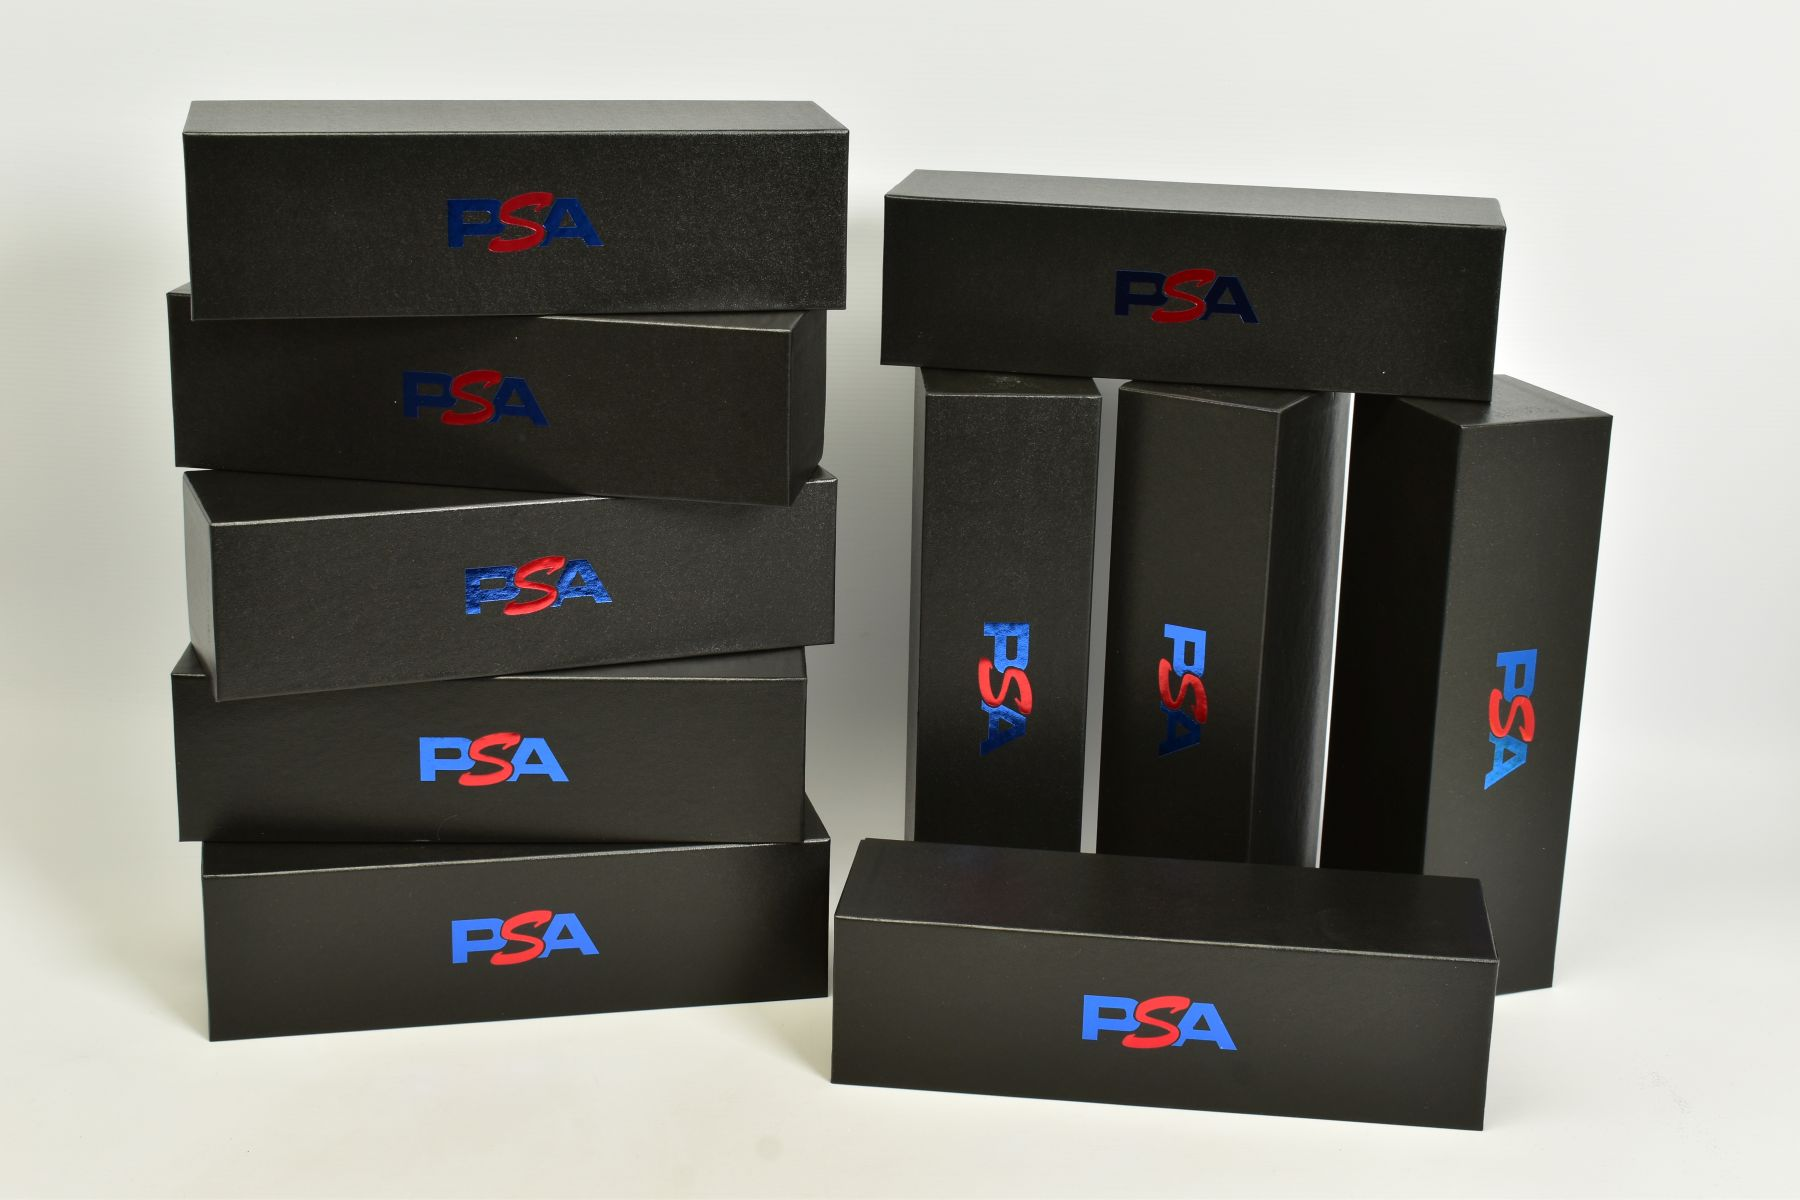 A QUANTITY OF EMPTY PSA CARDBOARD CARD STORAGE BOXES, lidded cardboard boxes finished in black